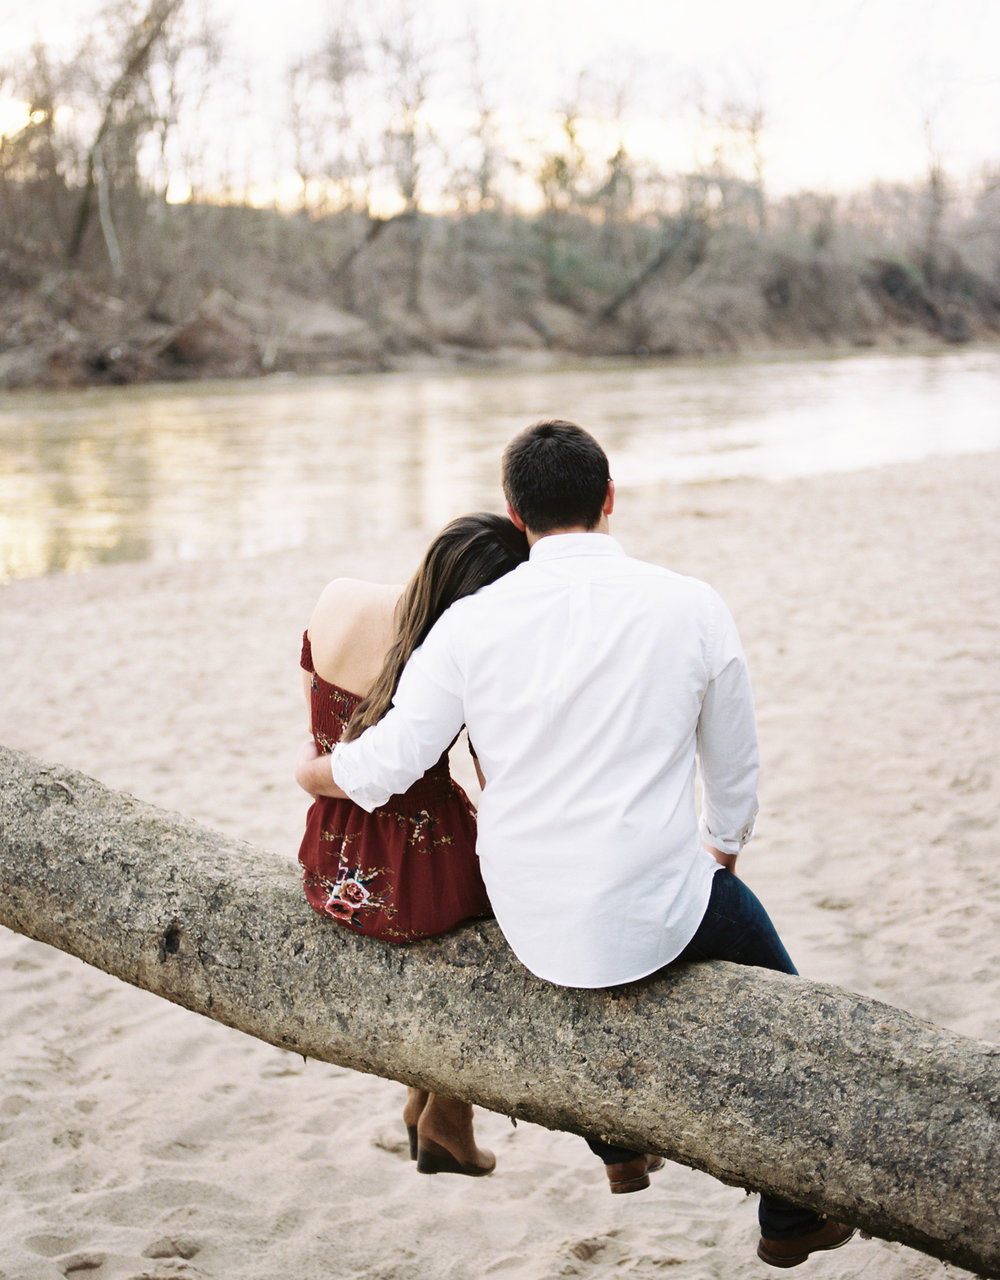 Christi & Michael - Engaged - © Kaitlyn Stoddard Photography-5.jpg